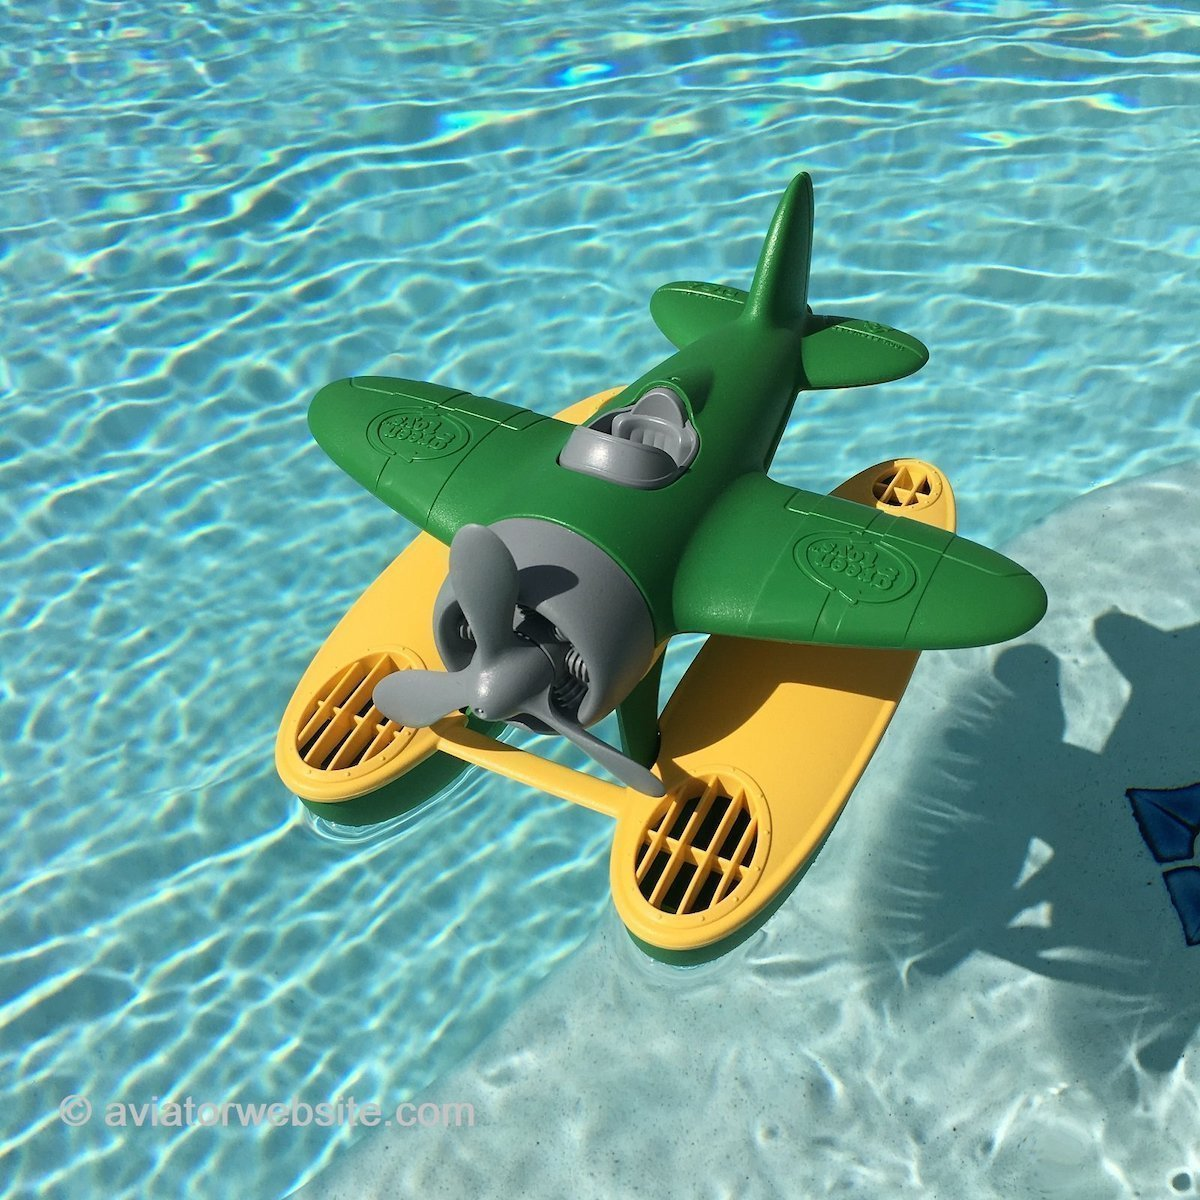 Seaplane plastic toy by Green Toys